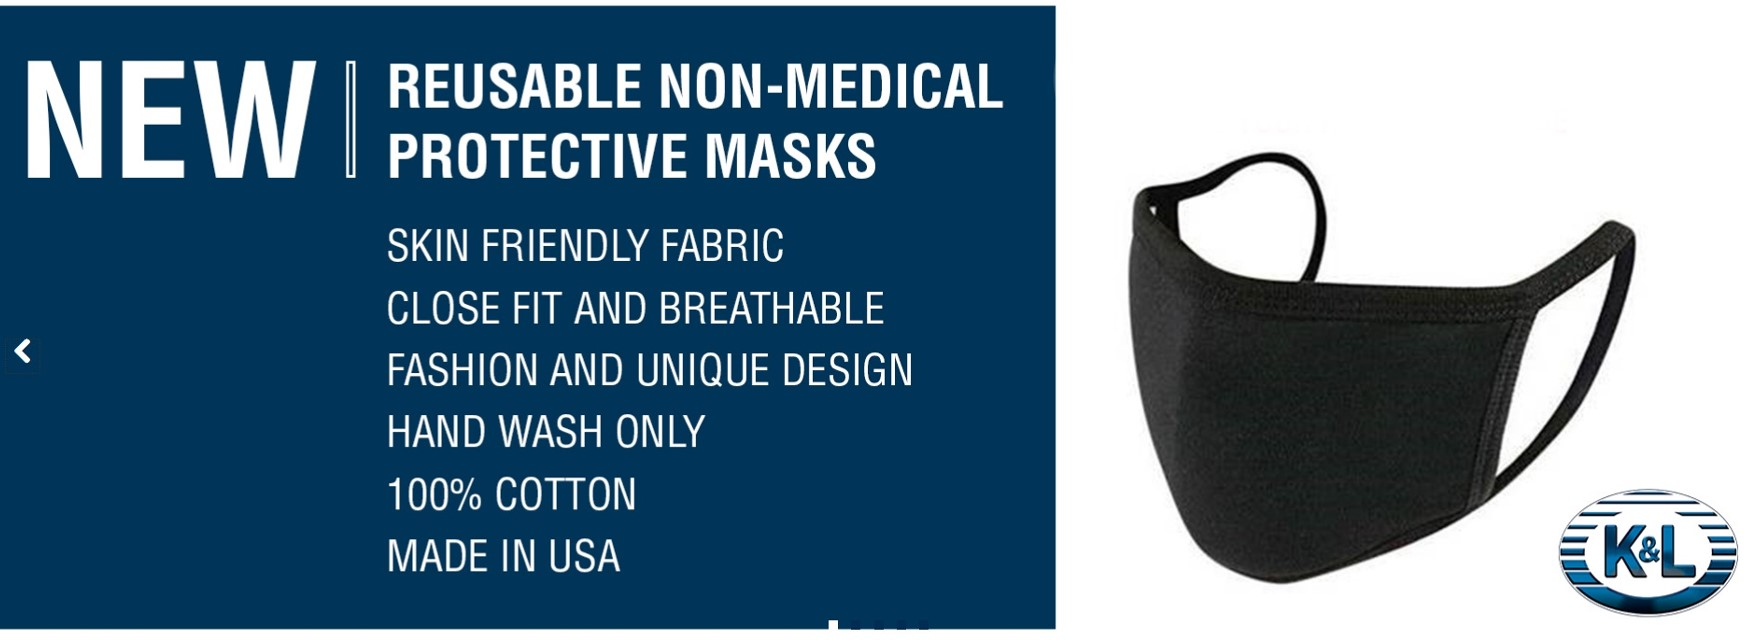 K&L SUPPLY REUSEABLE NON-MEDICAL PROTECTIVE MASKS